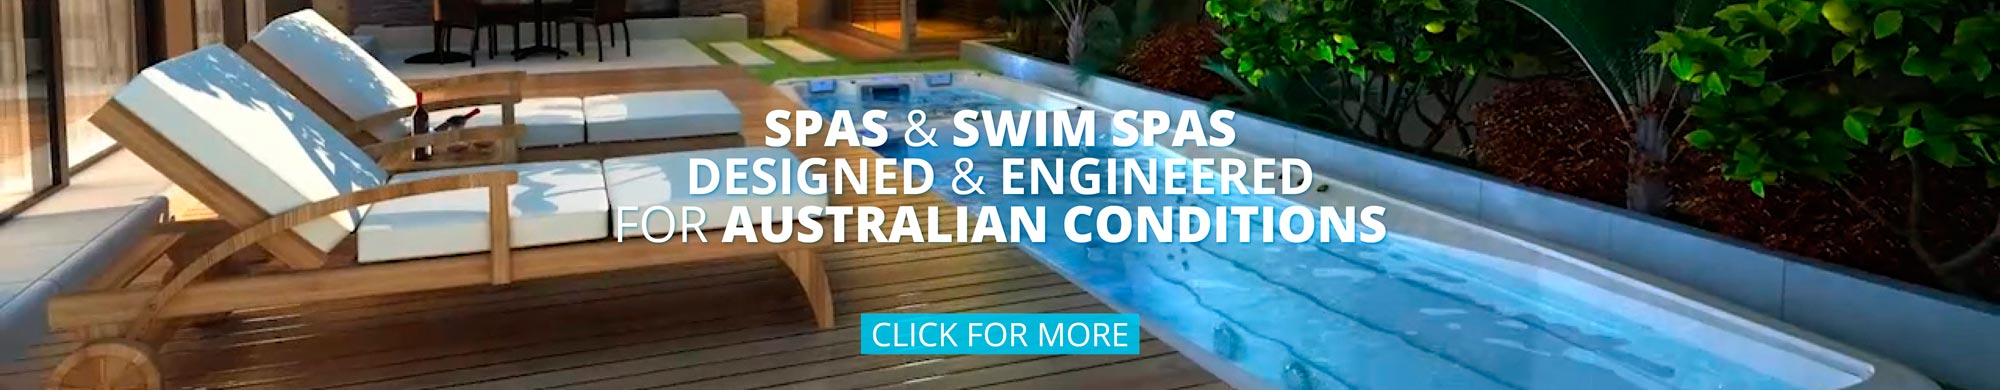 SpaChoice Spas and Swim spas are Engineered for Australian Conditions